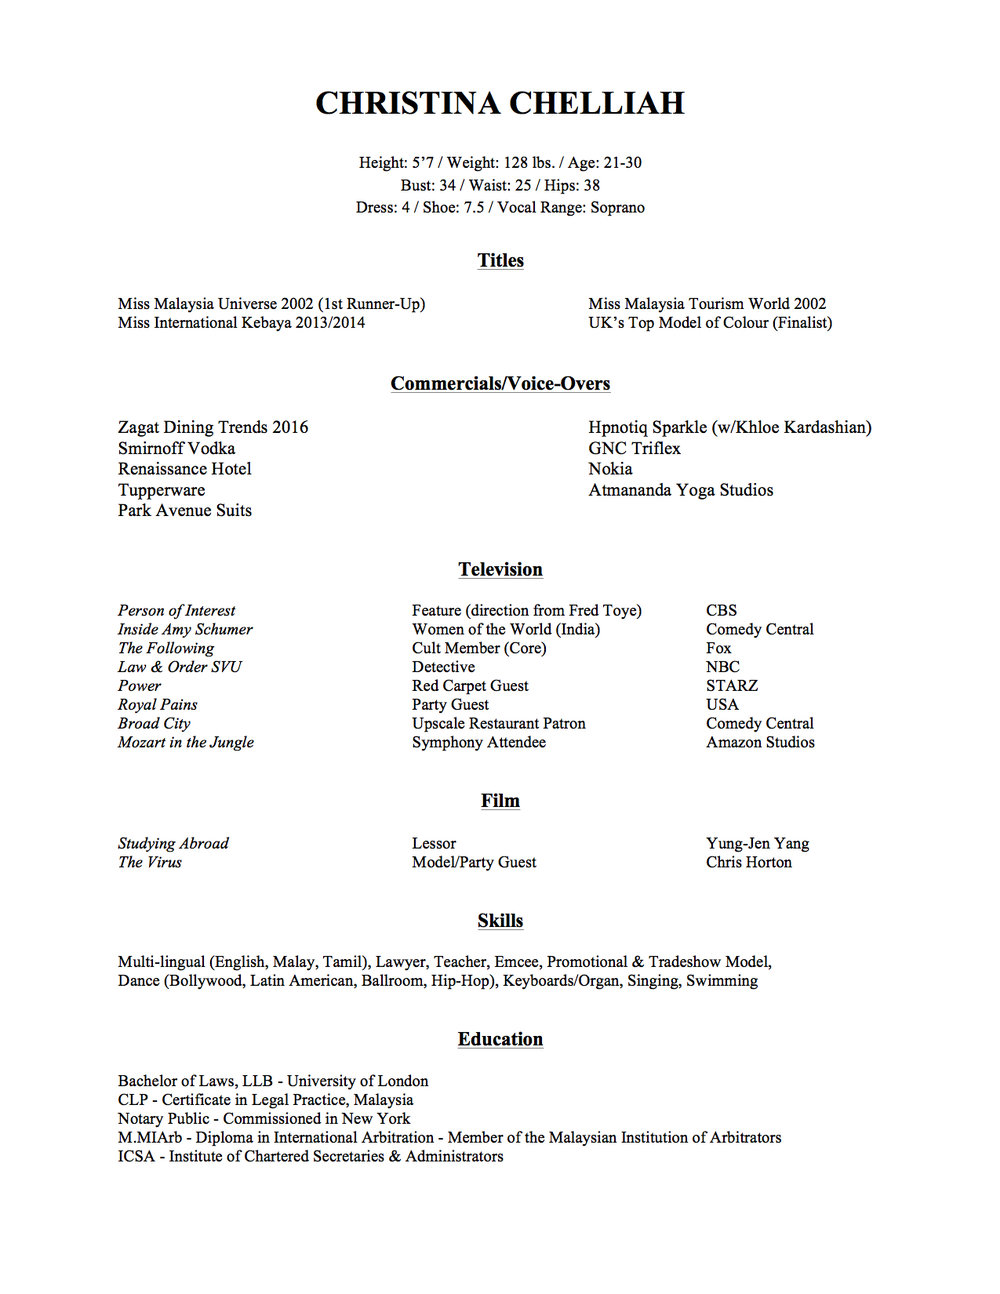 Acting Resume November 2016 (***FOR WEBSITE***).jpg